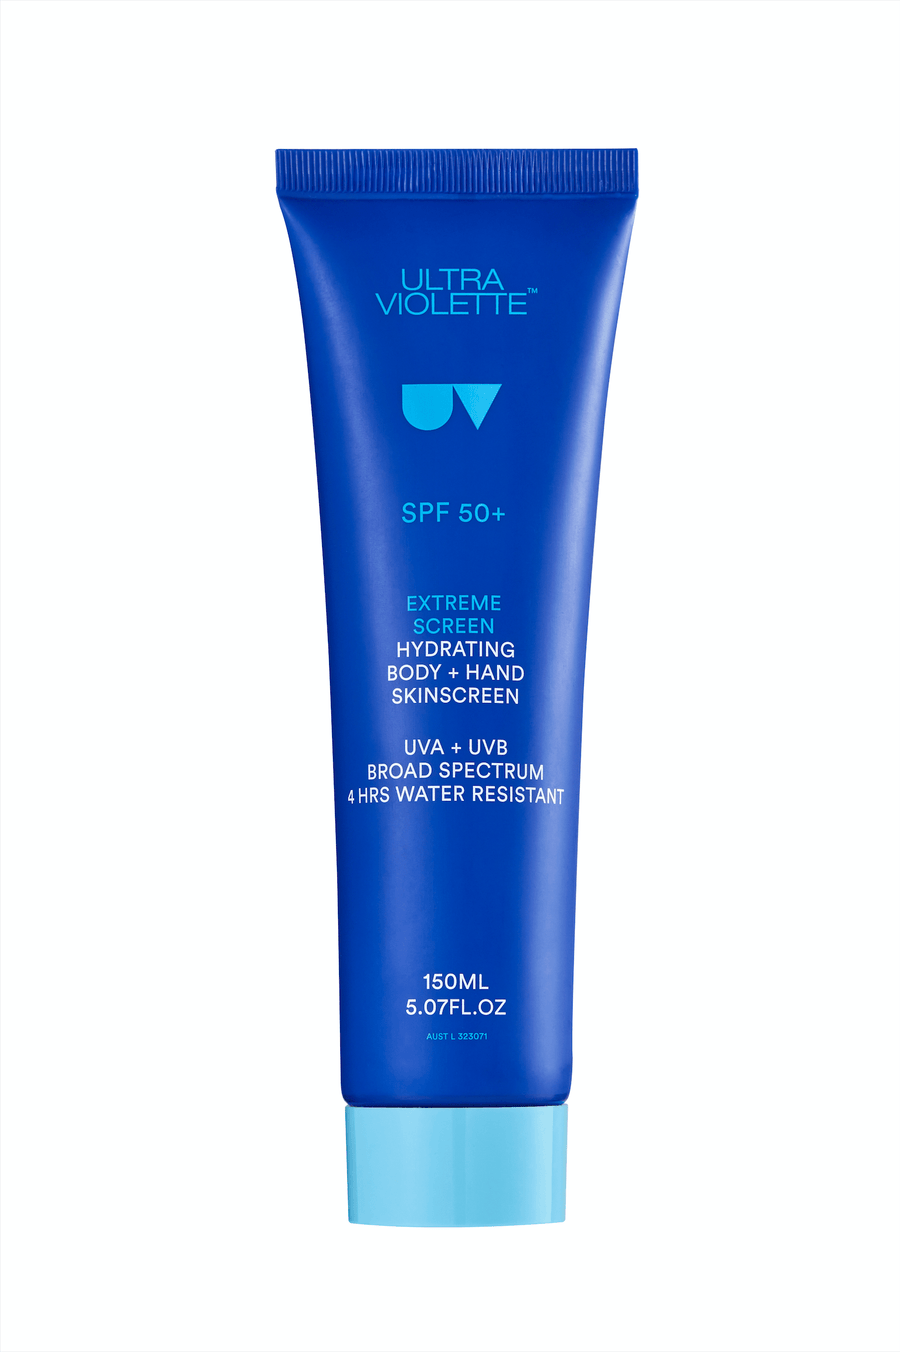 Extreme Screen Hydrating Body and Hand SPF 50+